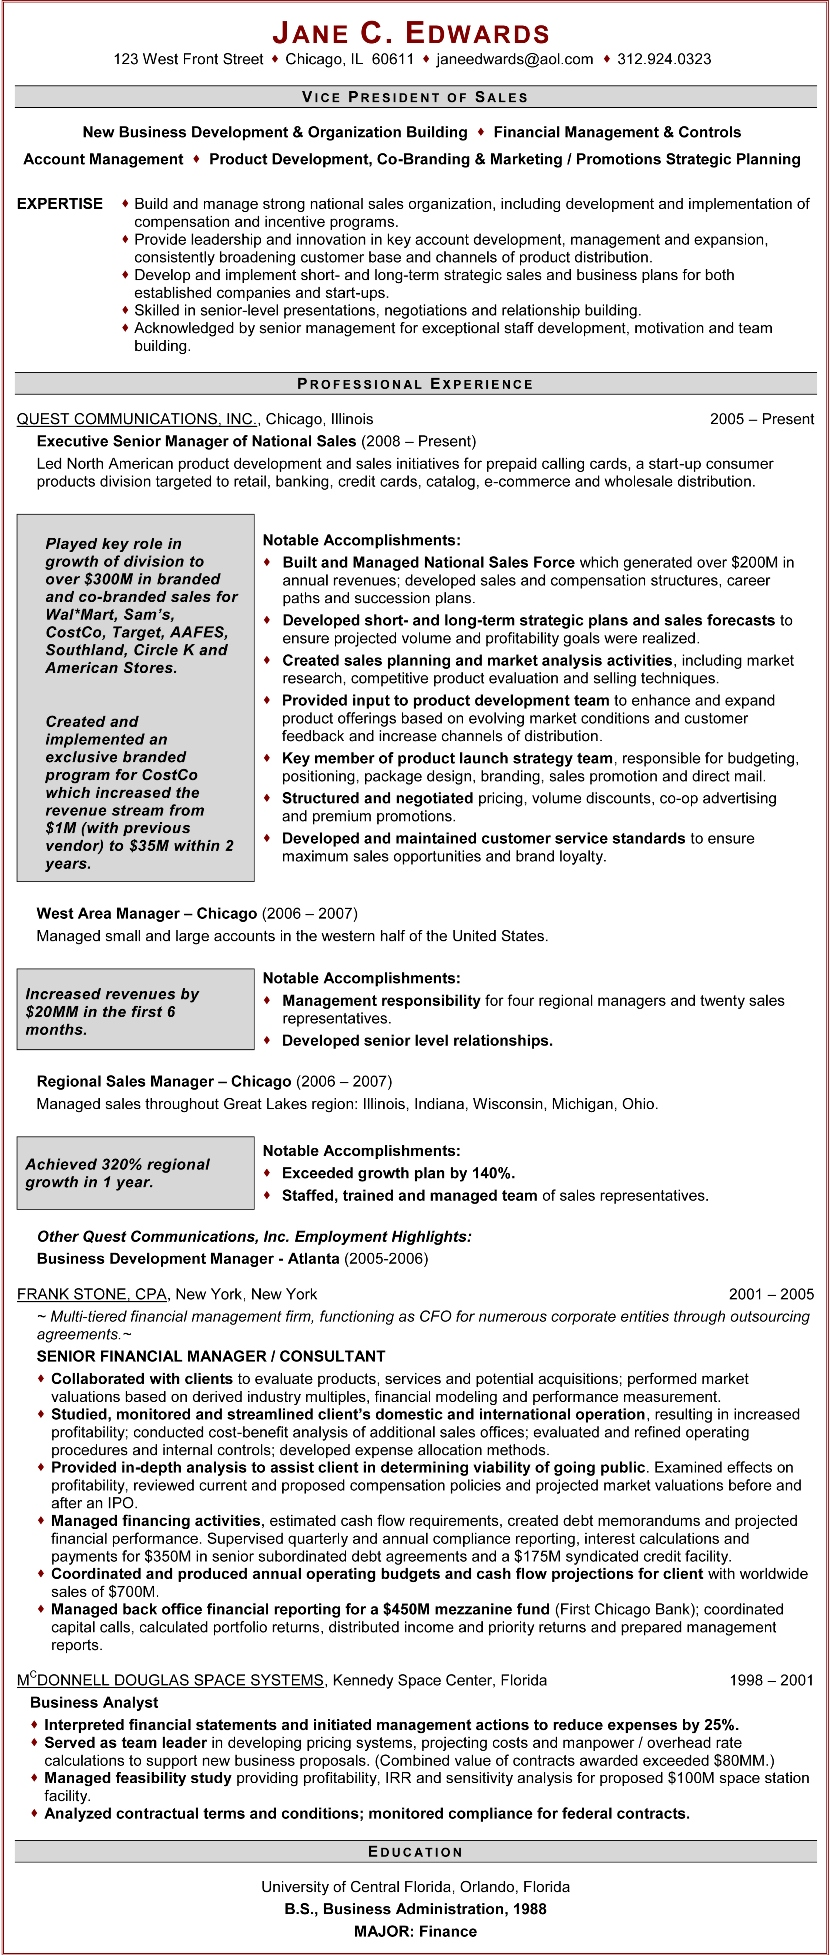 vice president of sales resume examples